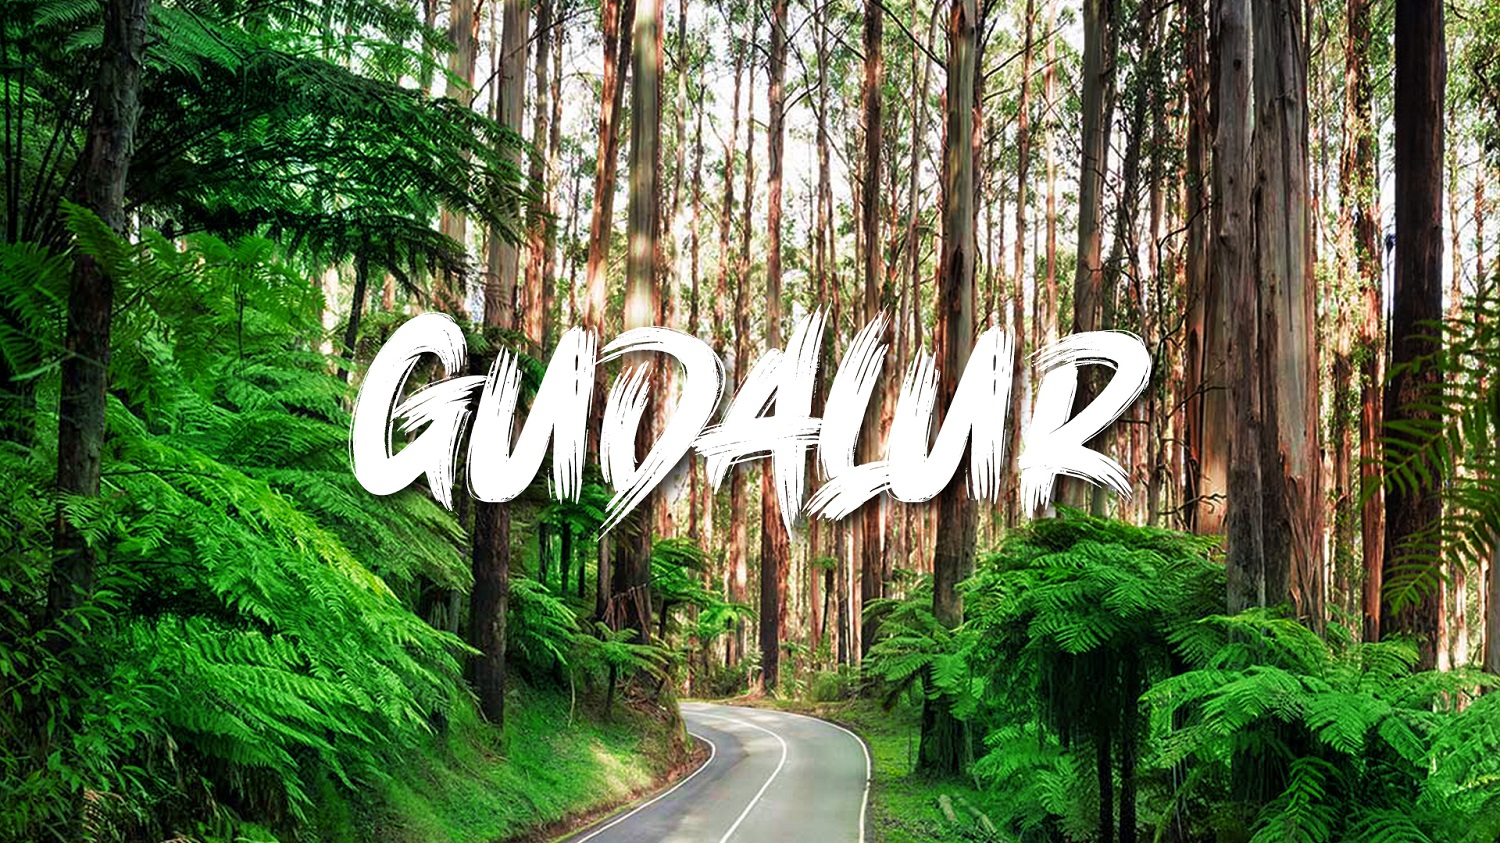 Gudalur-Visit, Invest and Settle in a Satellite Town at Hills!!